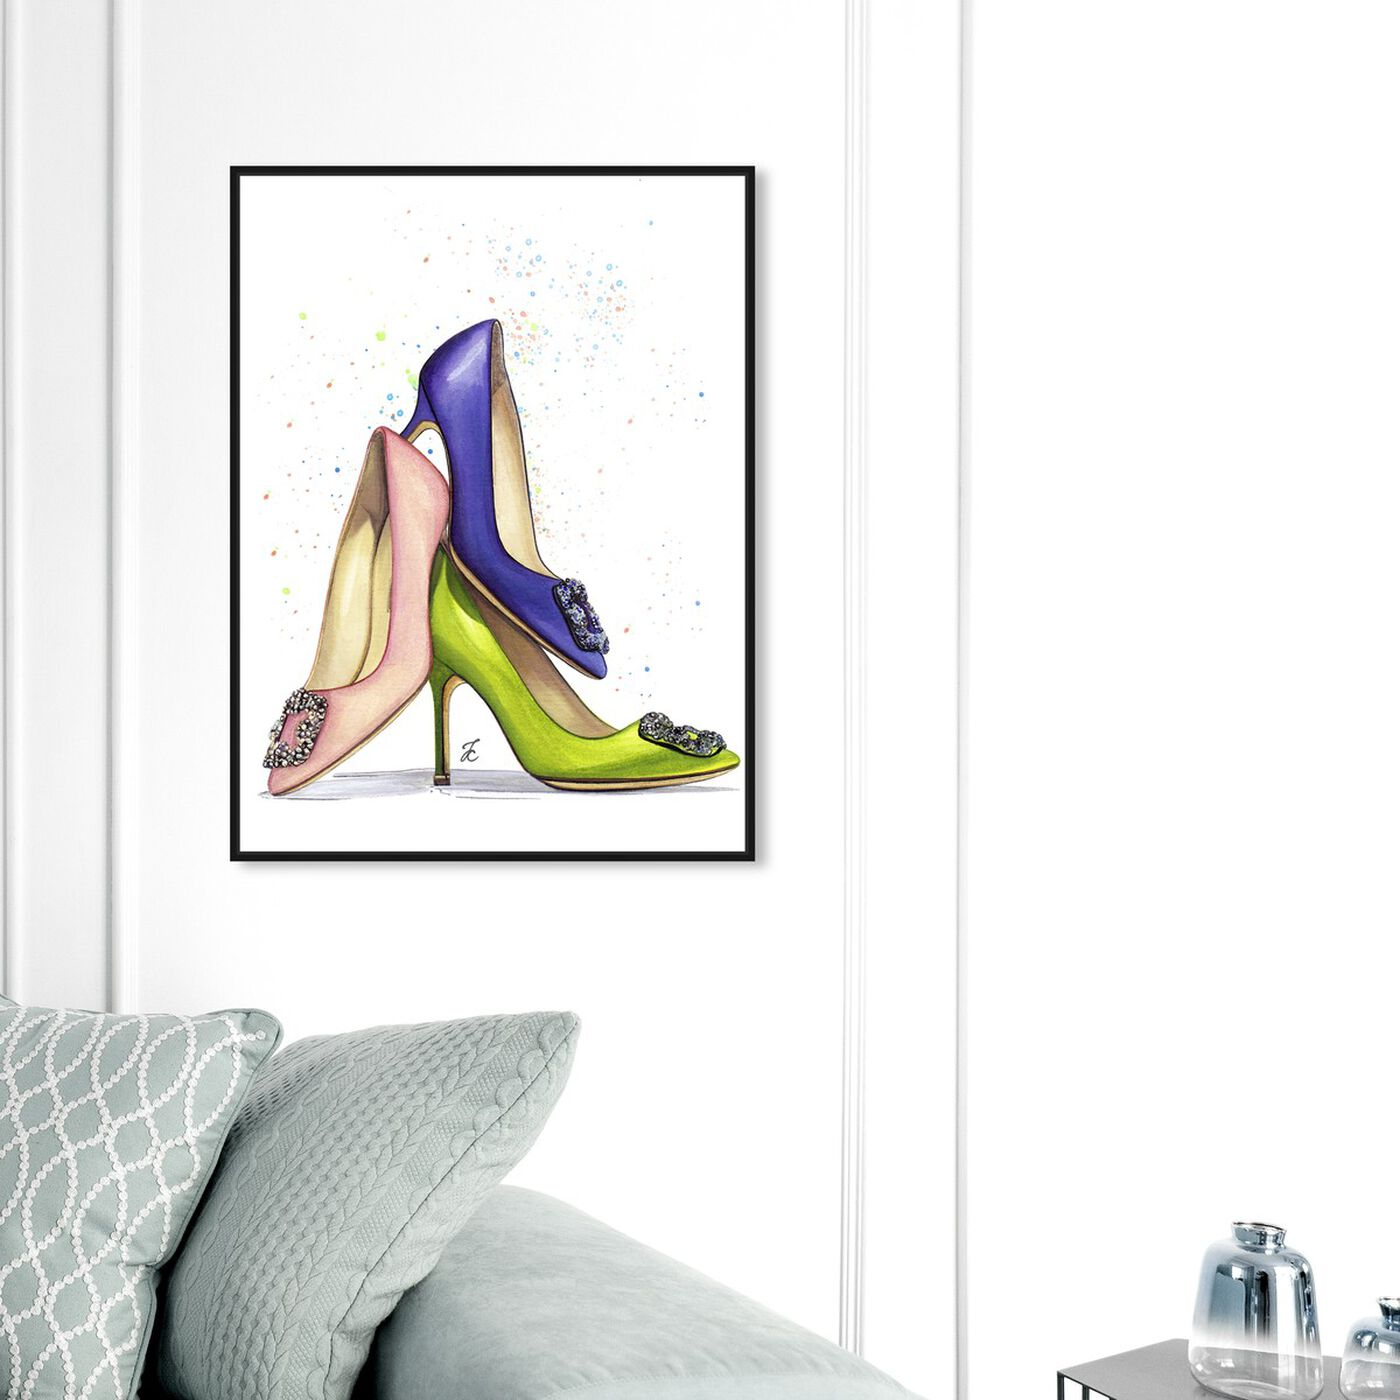 Hanging view of Doll Memories - Shoe Lover featuring fashion and glam and shoes art.